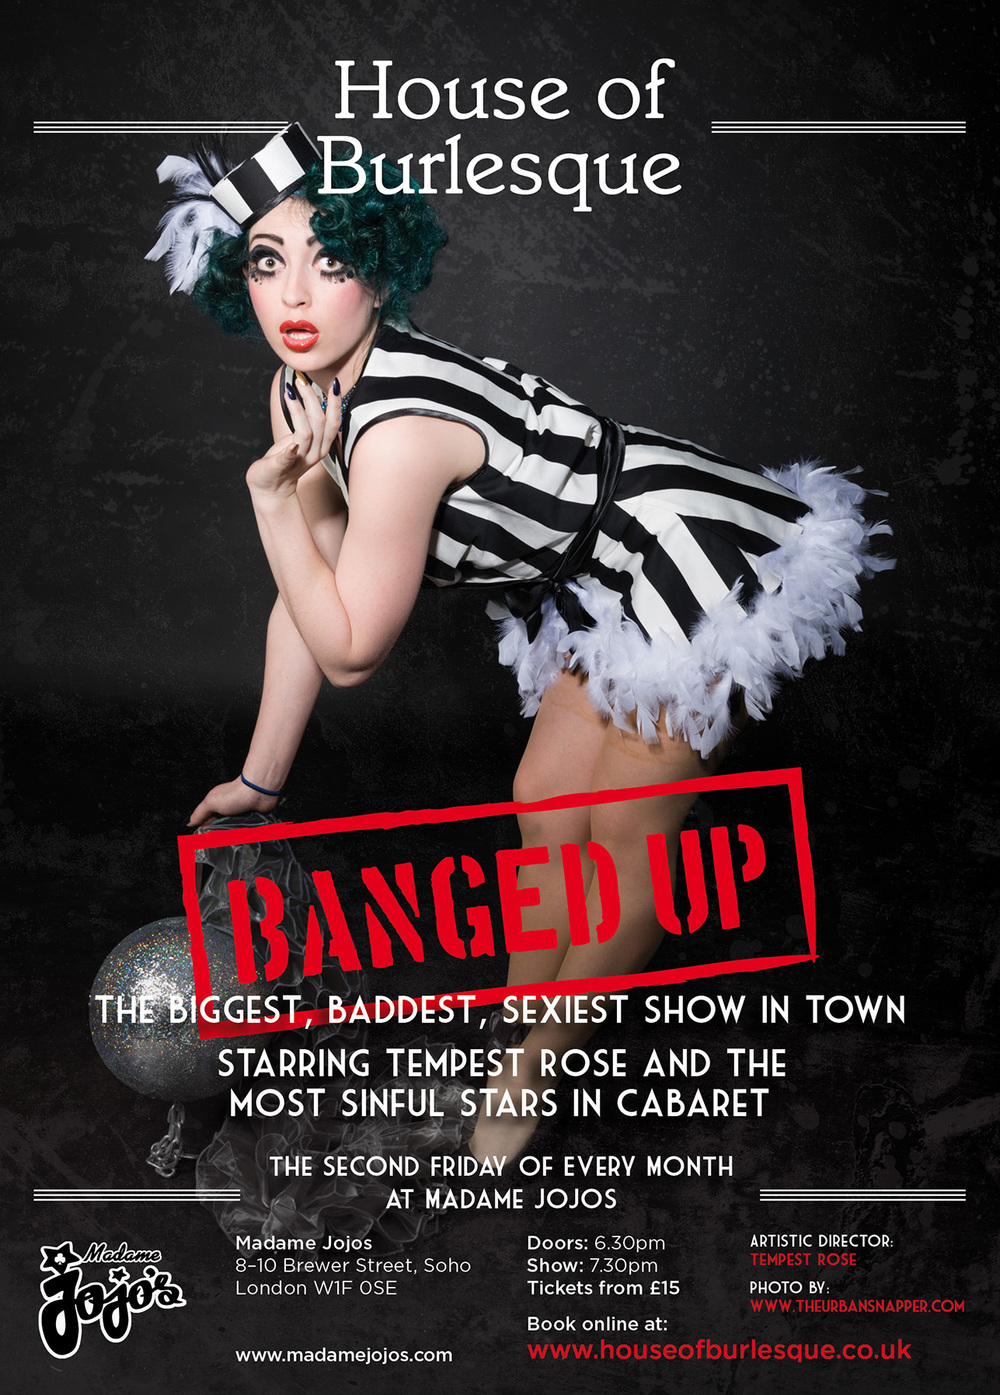 House of Burlesque Banged Up